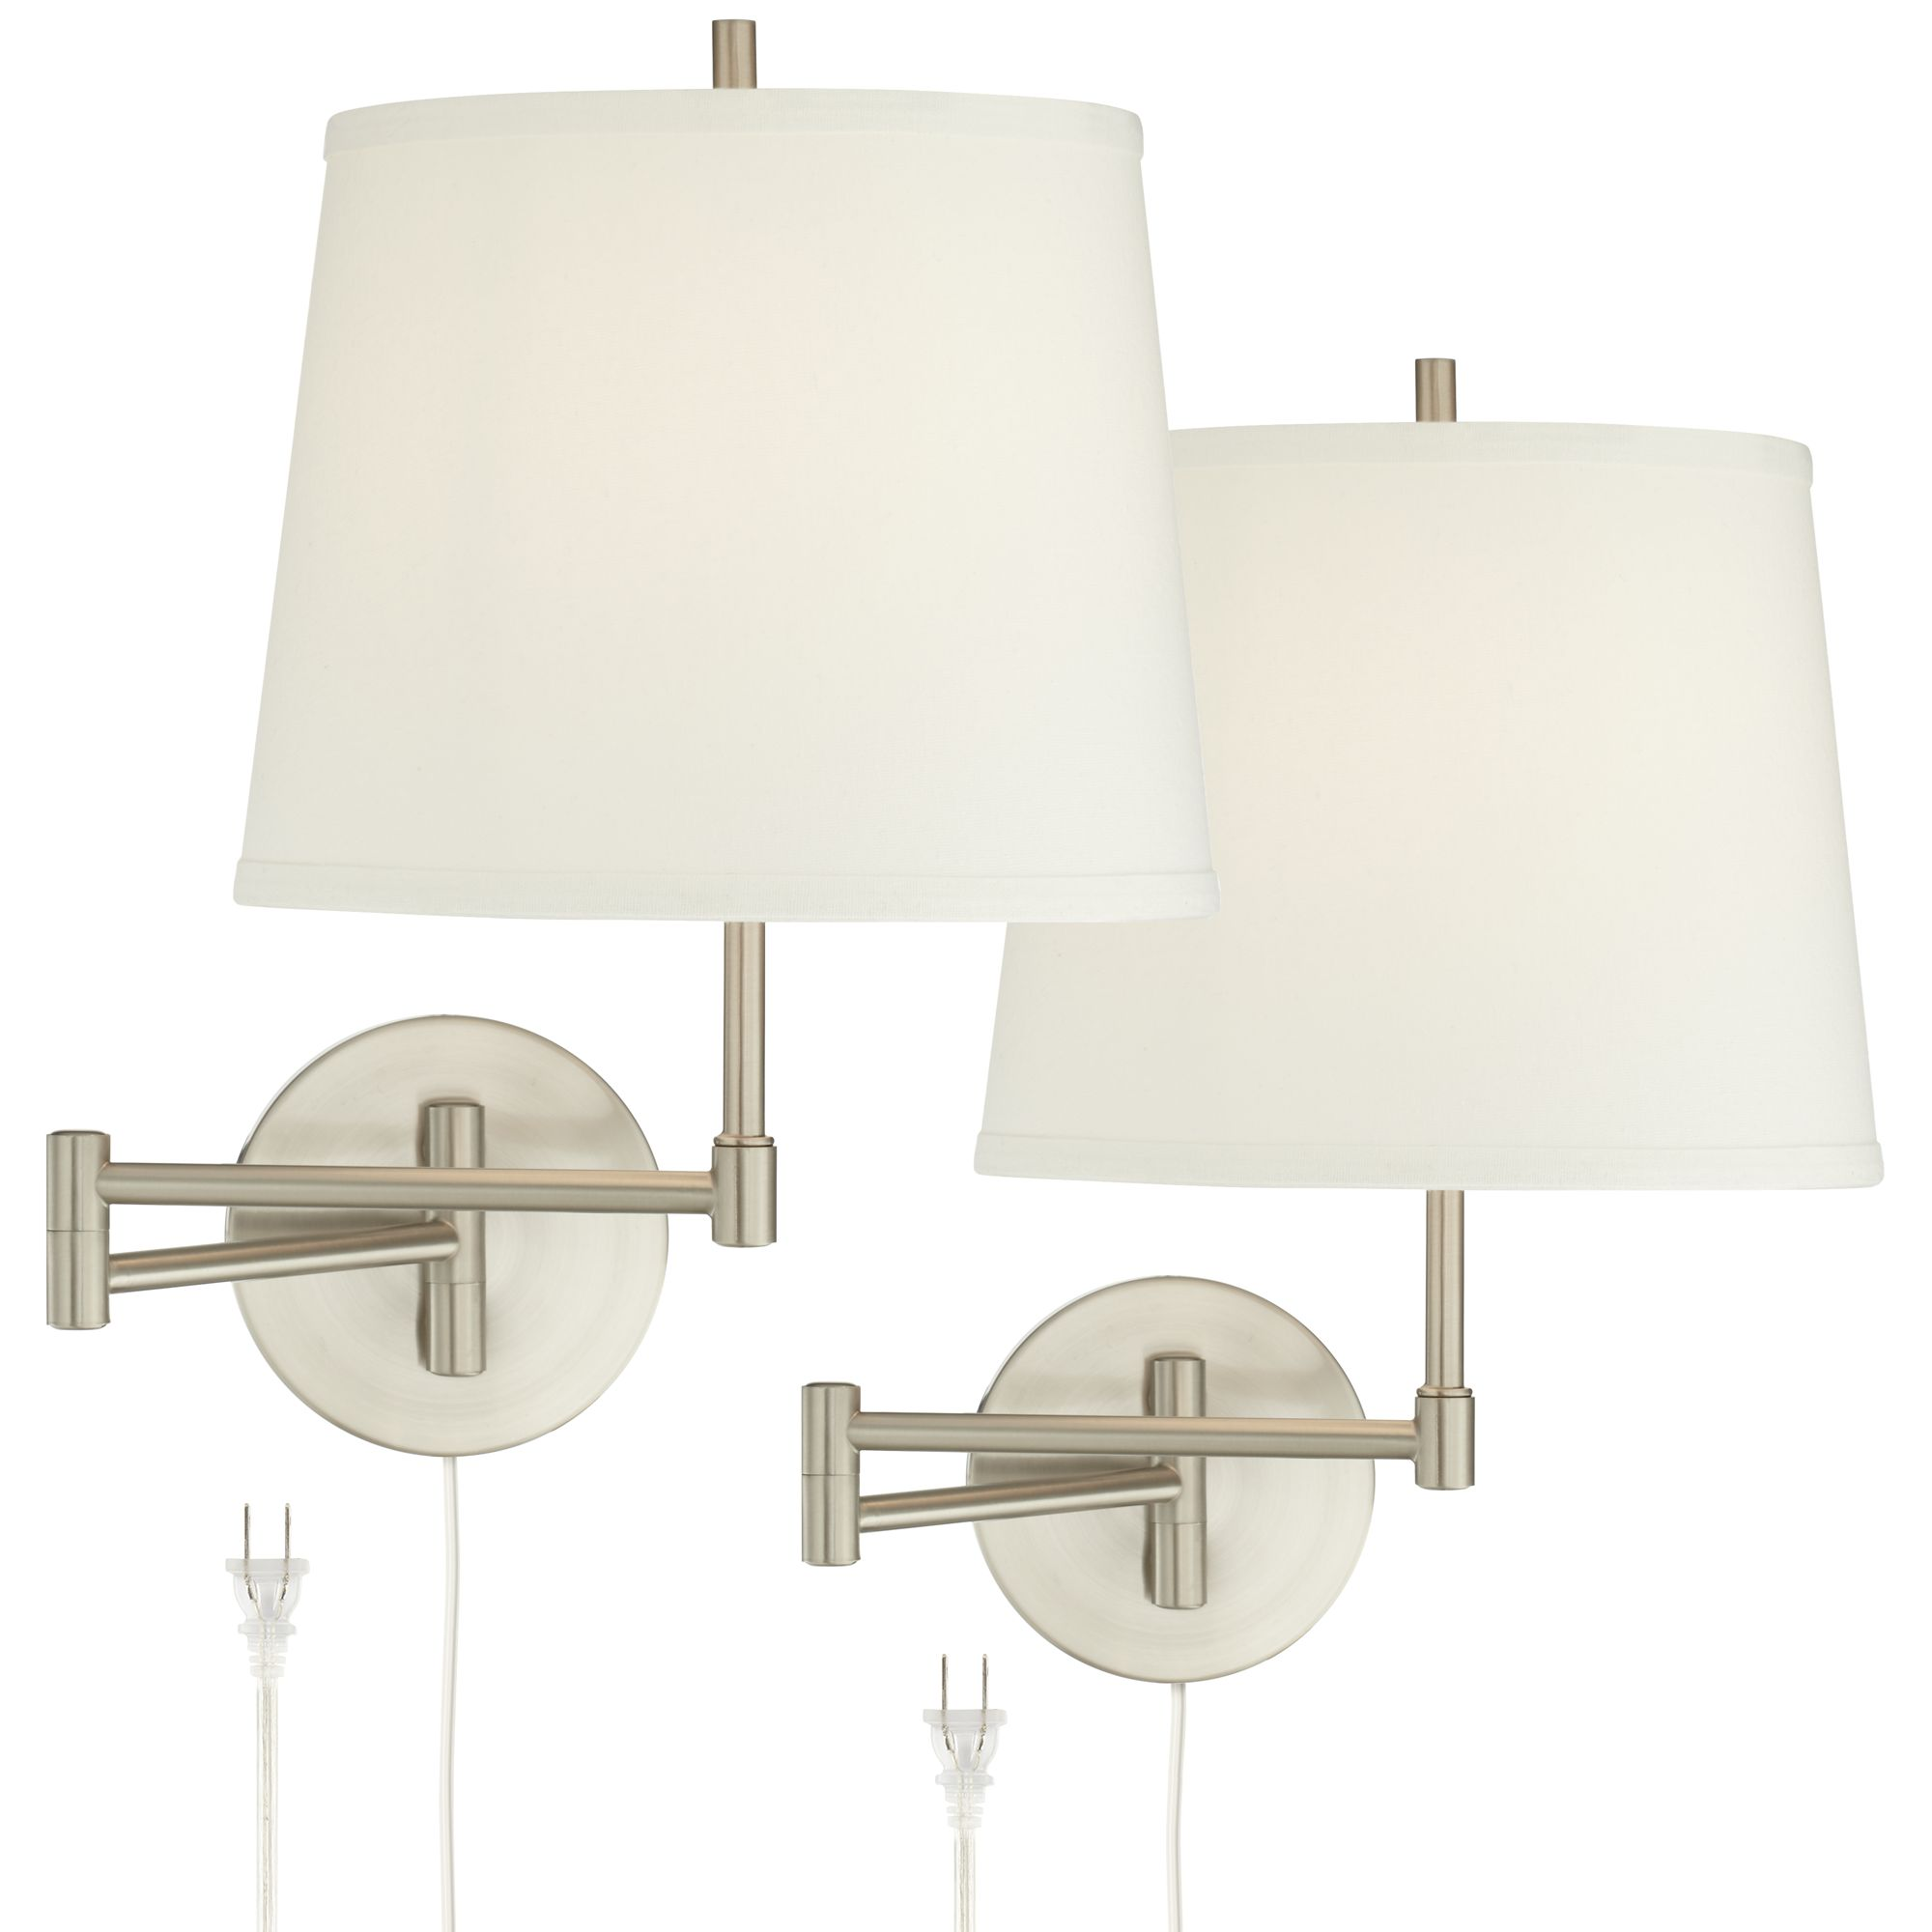 arm wall lamps Swinging